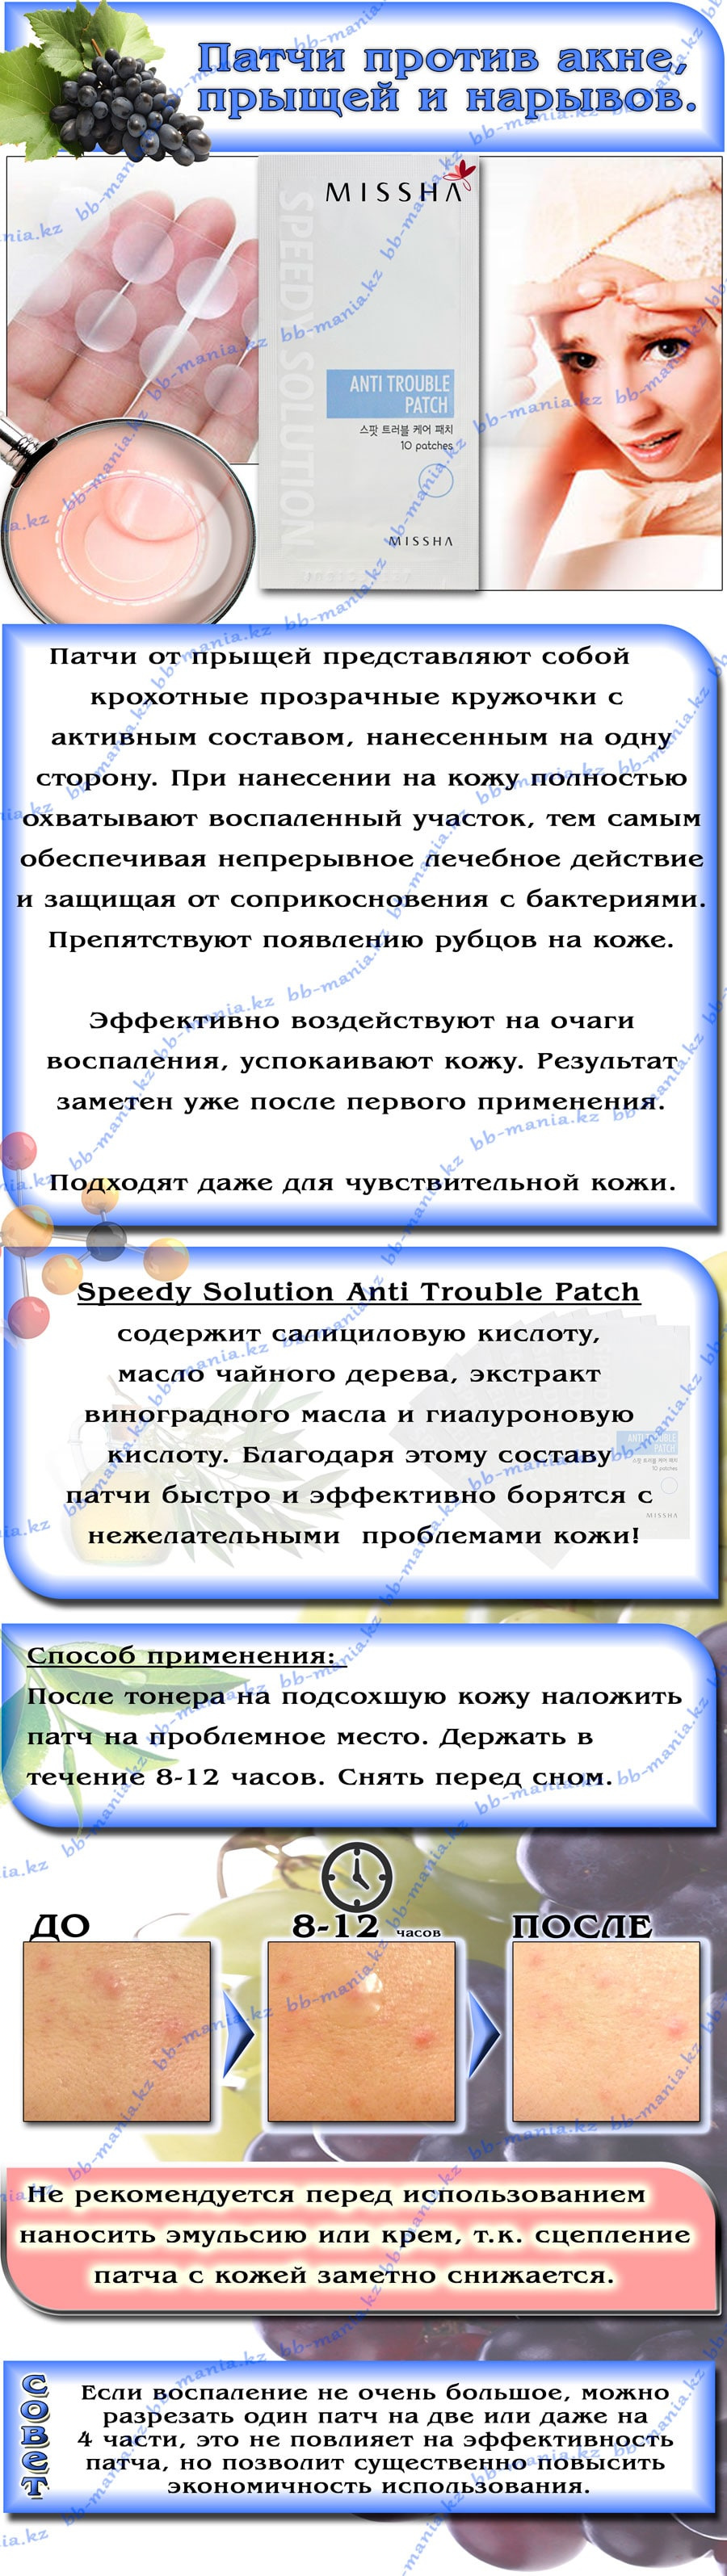 Speedy-Solution-Anti-Trouble-Patch (1)-min